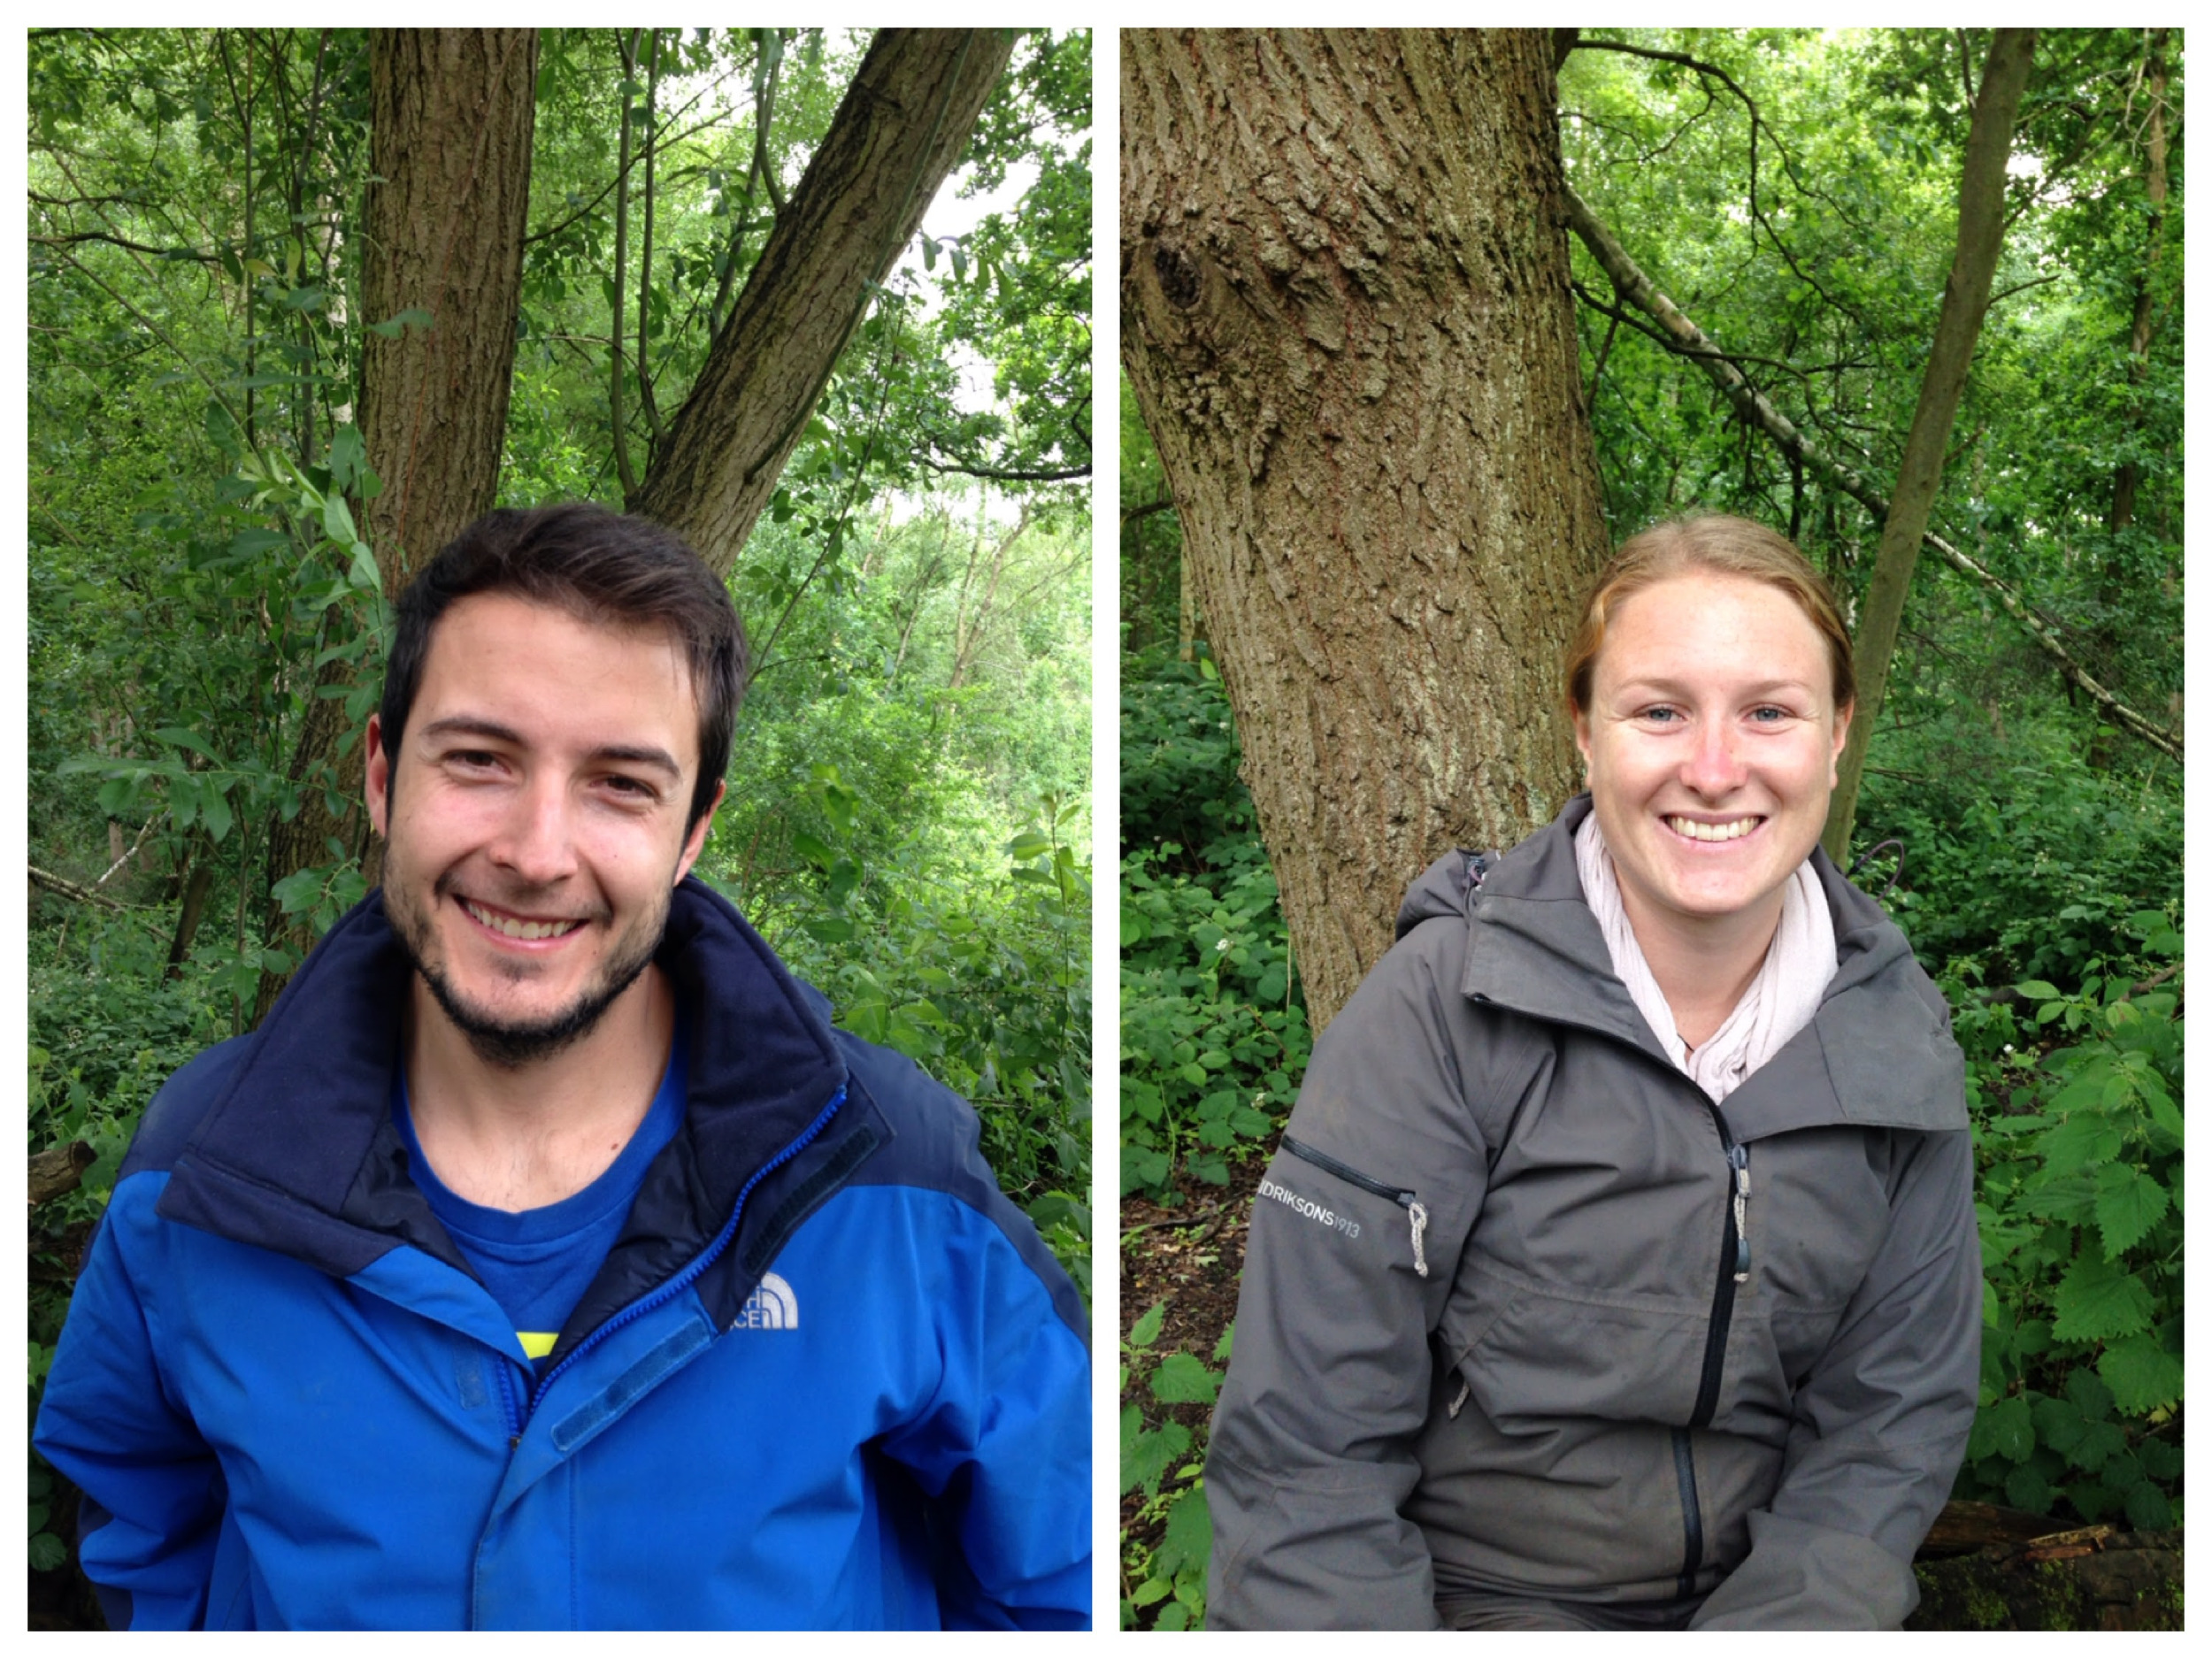 This week we welcomed Alex and Antonio to the forest